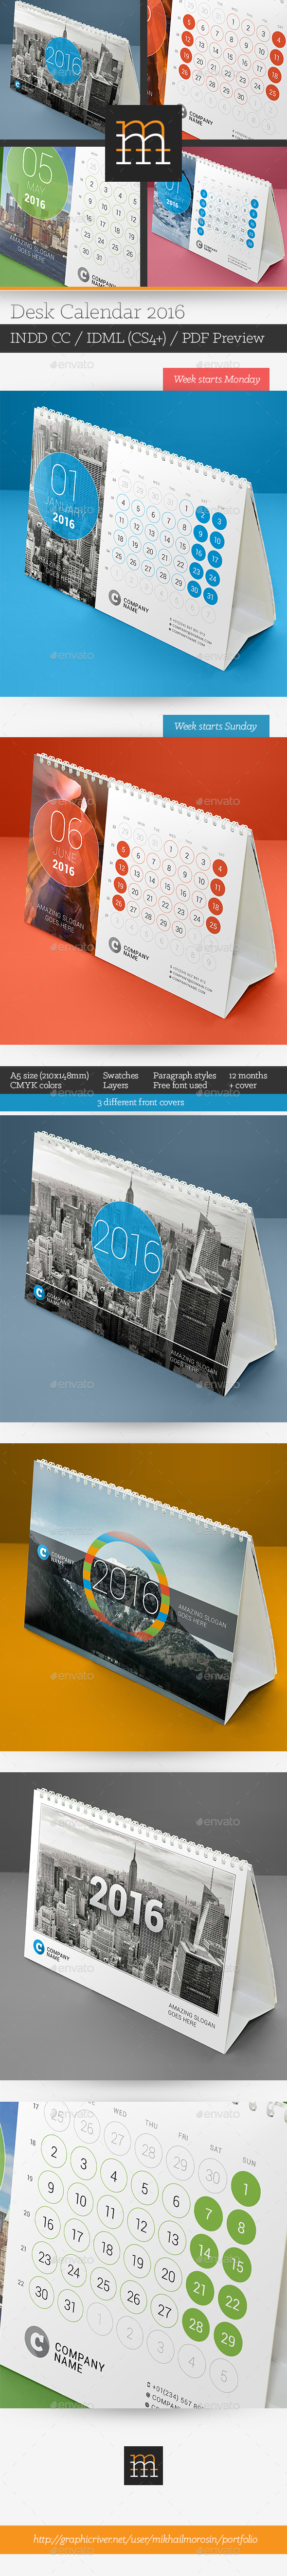 Desk Calendar  Desk Calendars Desks And Calendar Design